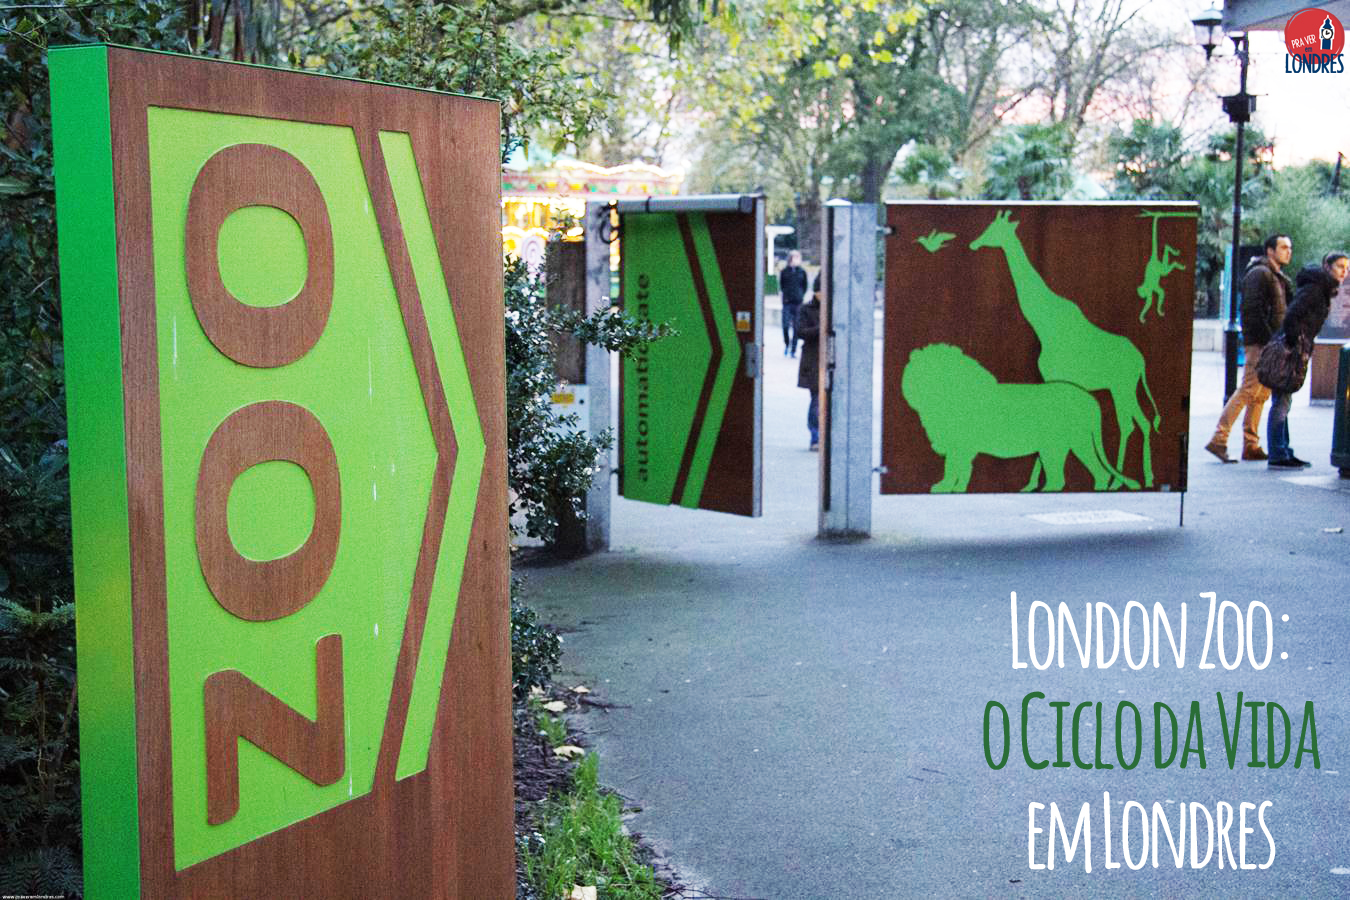 London Zoo: o ciclo da vida em Londres